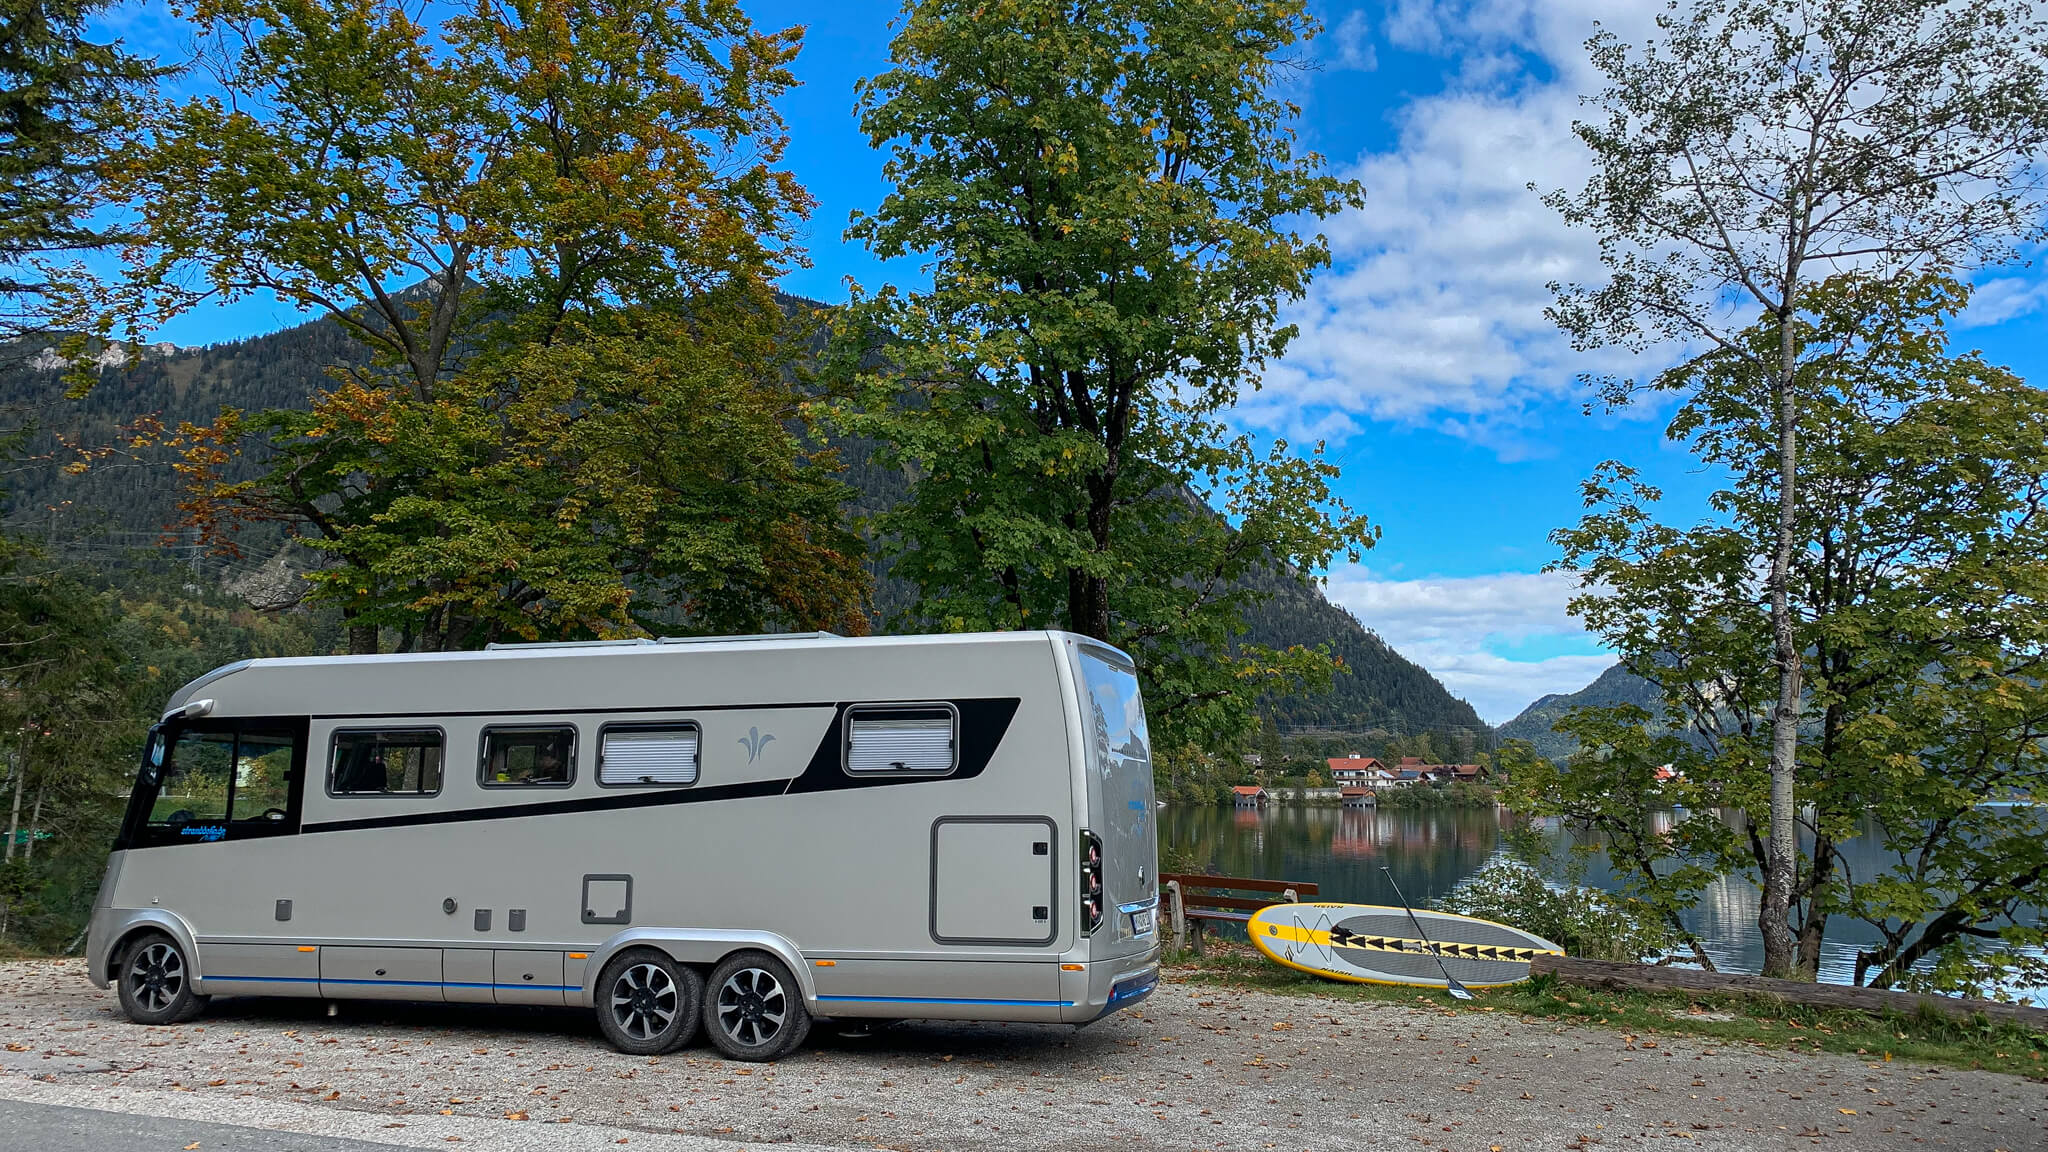 NIESMANN+BISCHOFF - Arto - Marilyn - Camper Van Summit Meeting